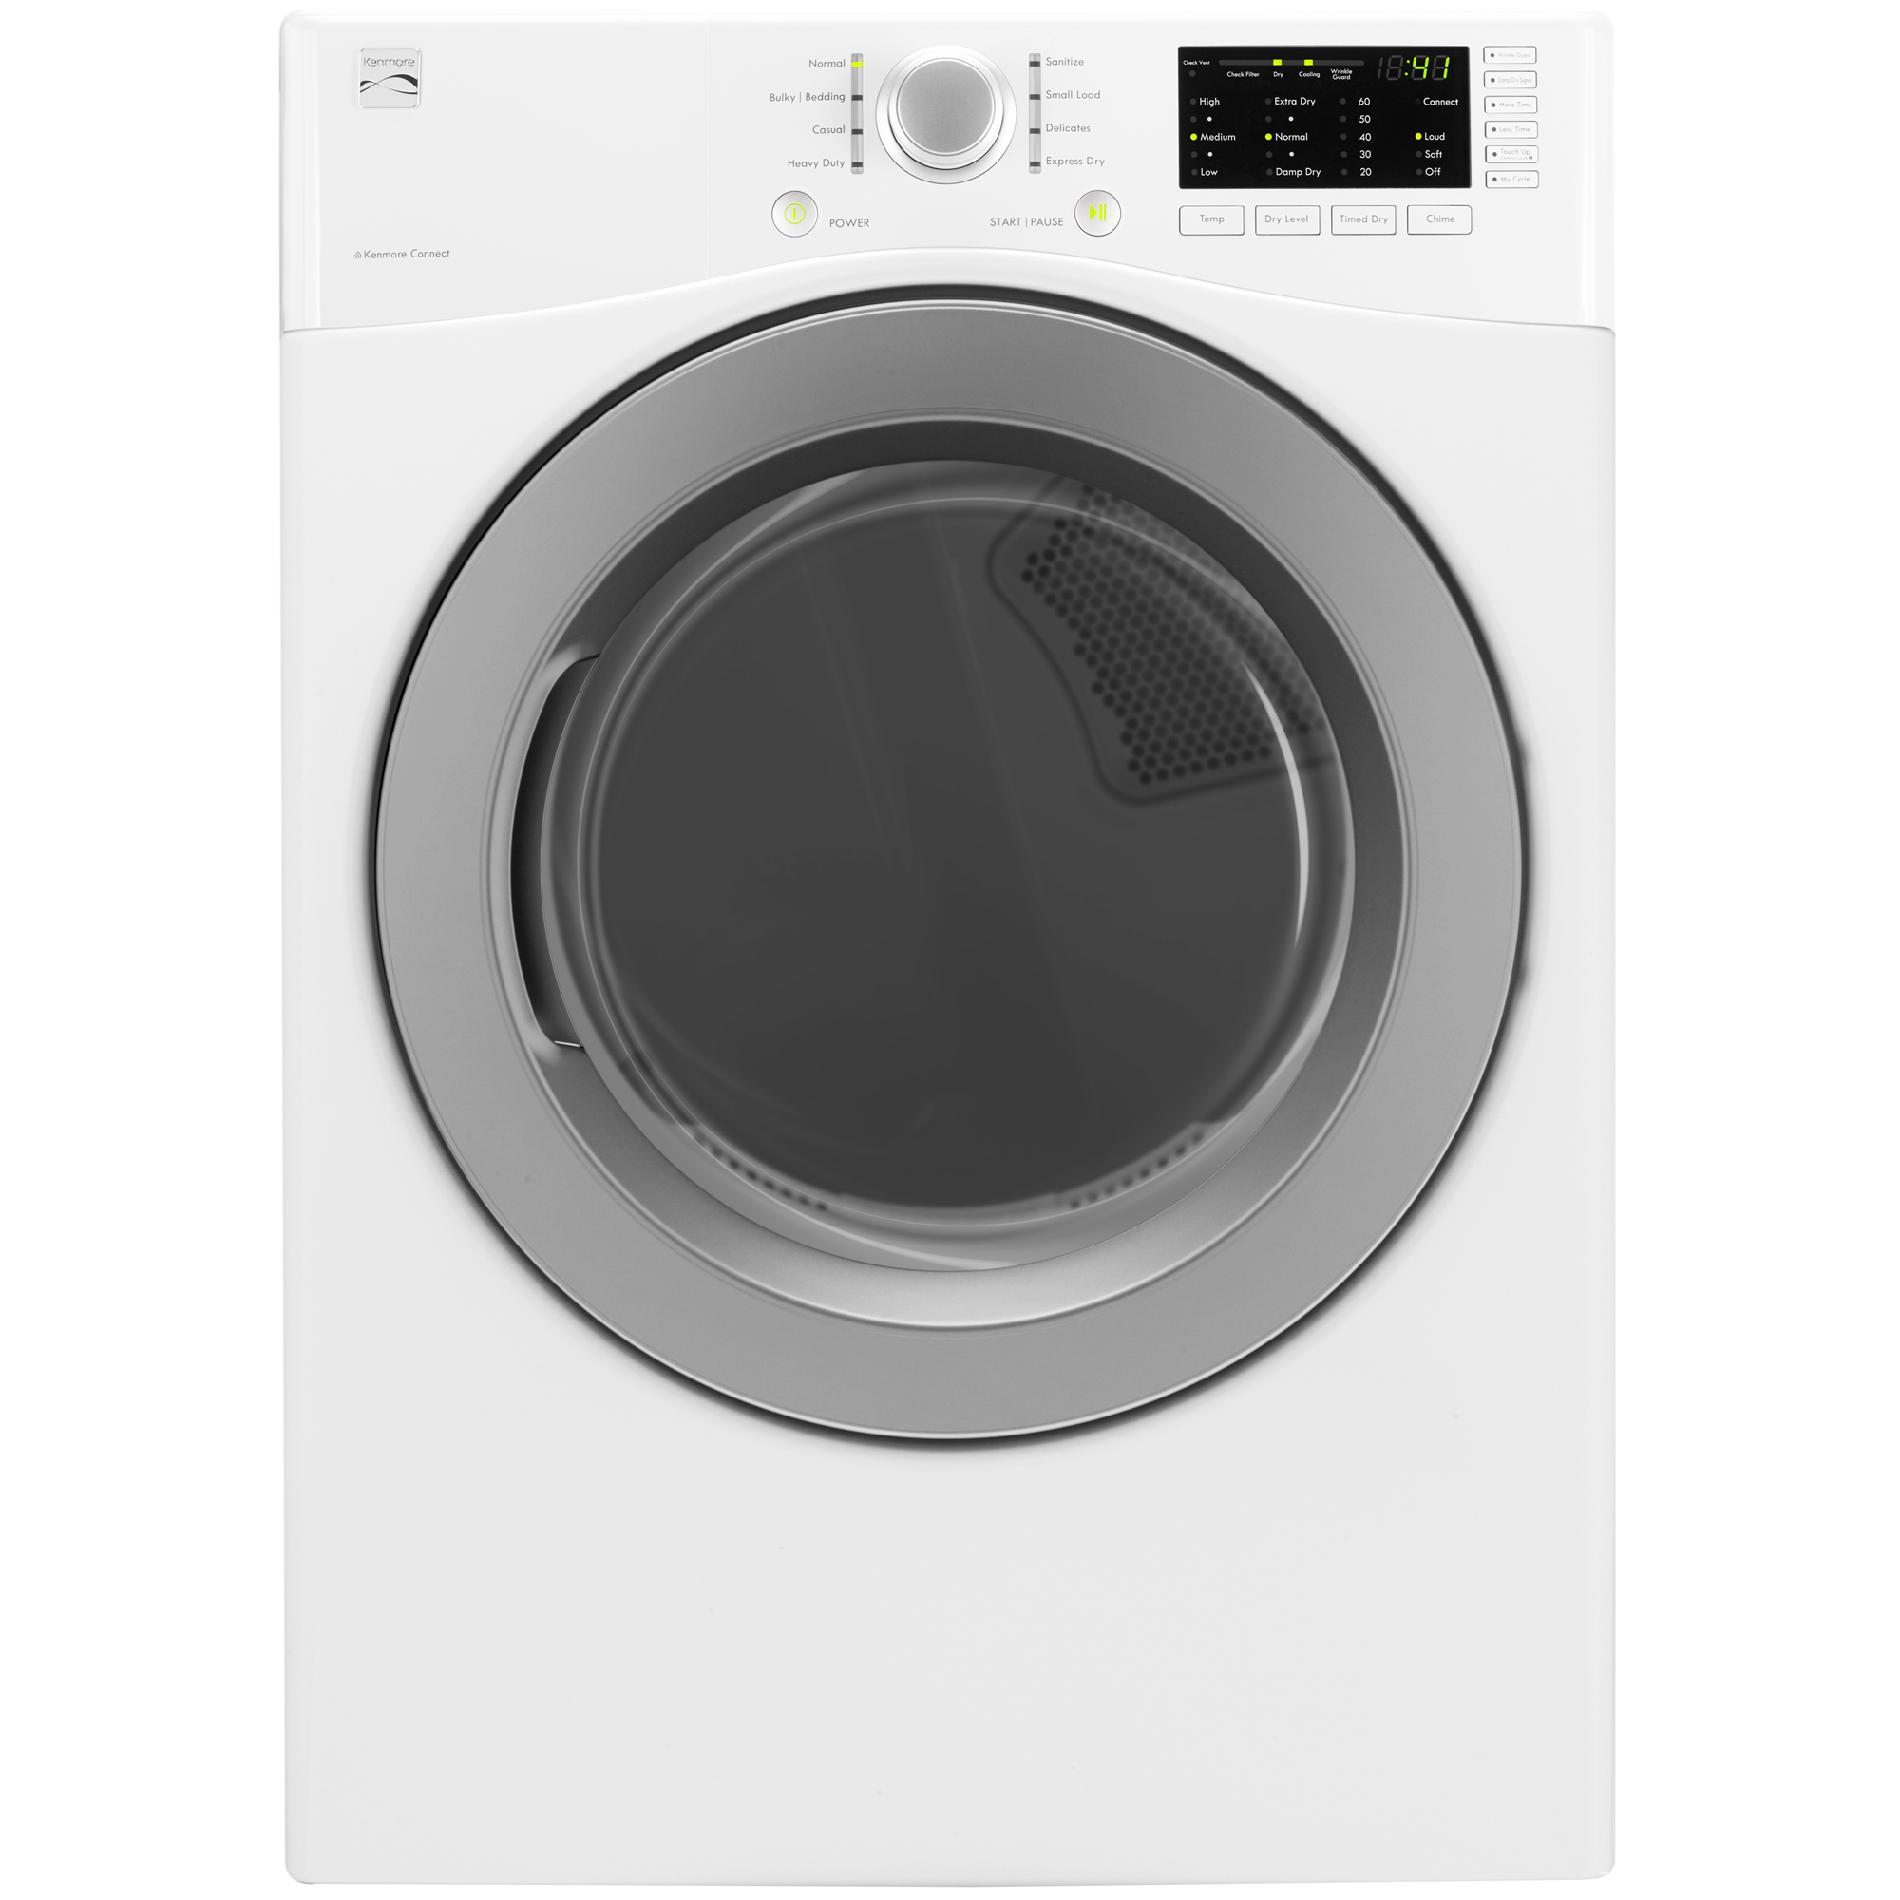 81182-7-3-cu-ft-Electric-Dryer-w-Sensor-Dry-White